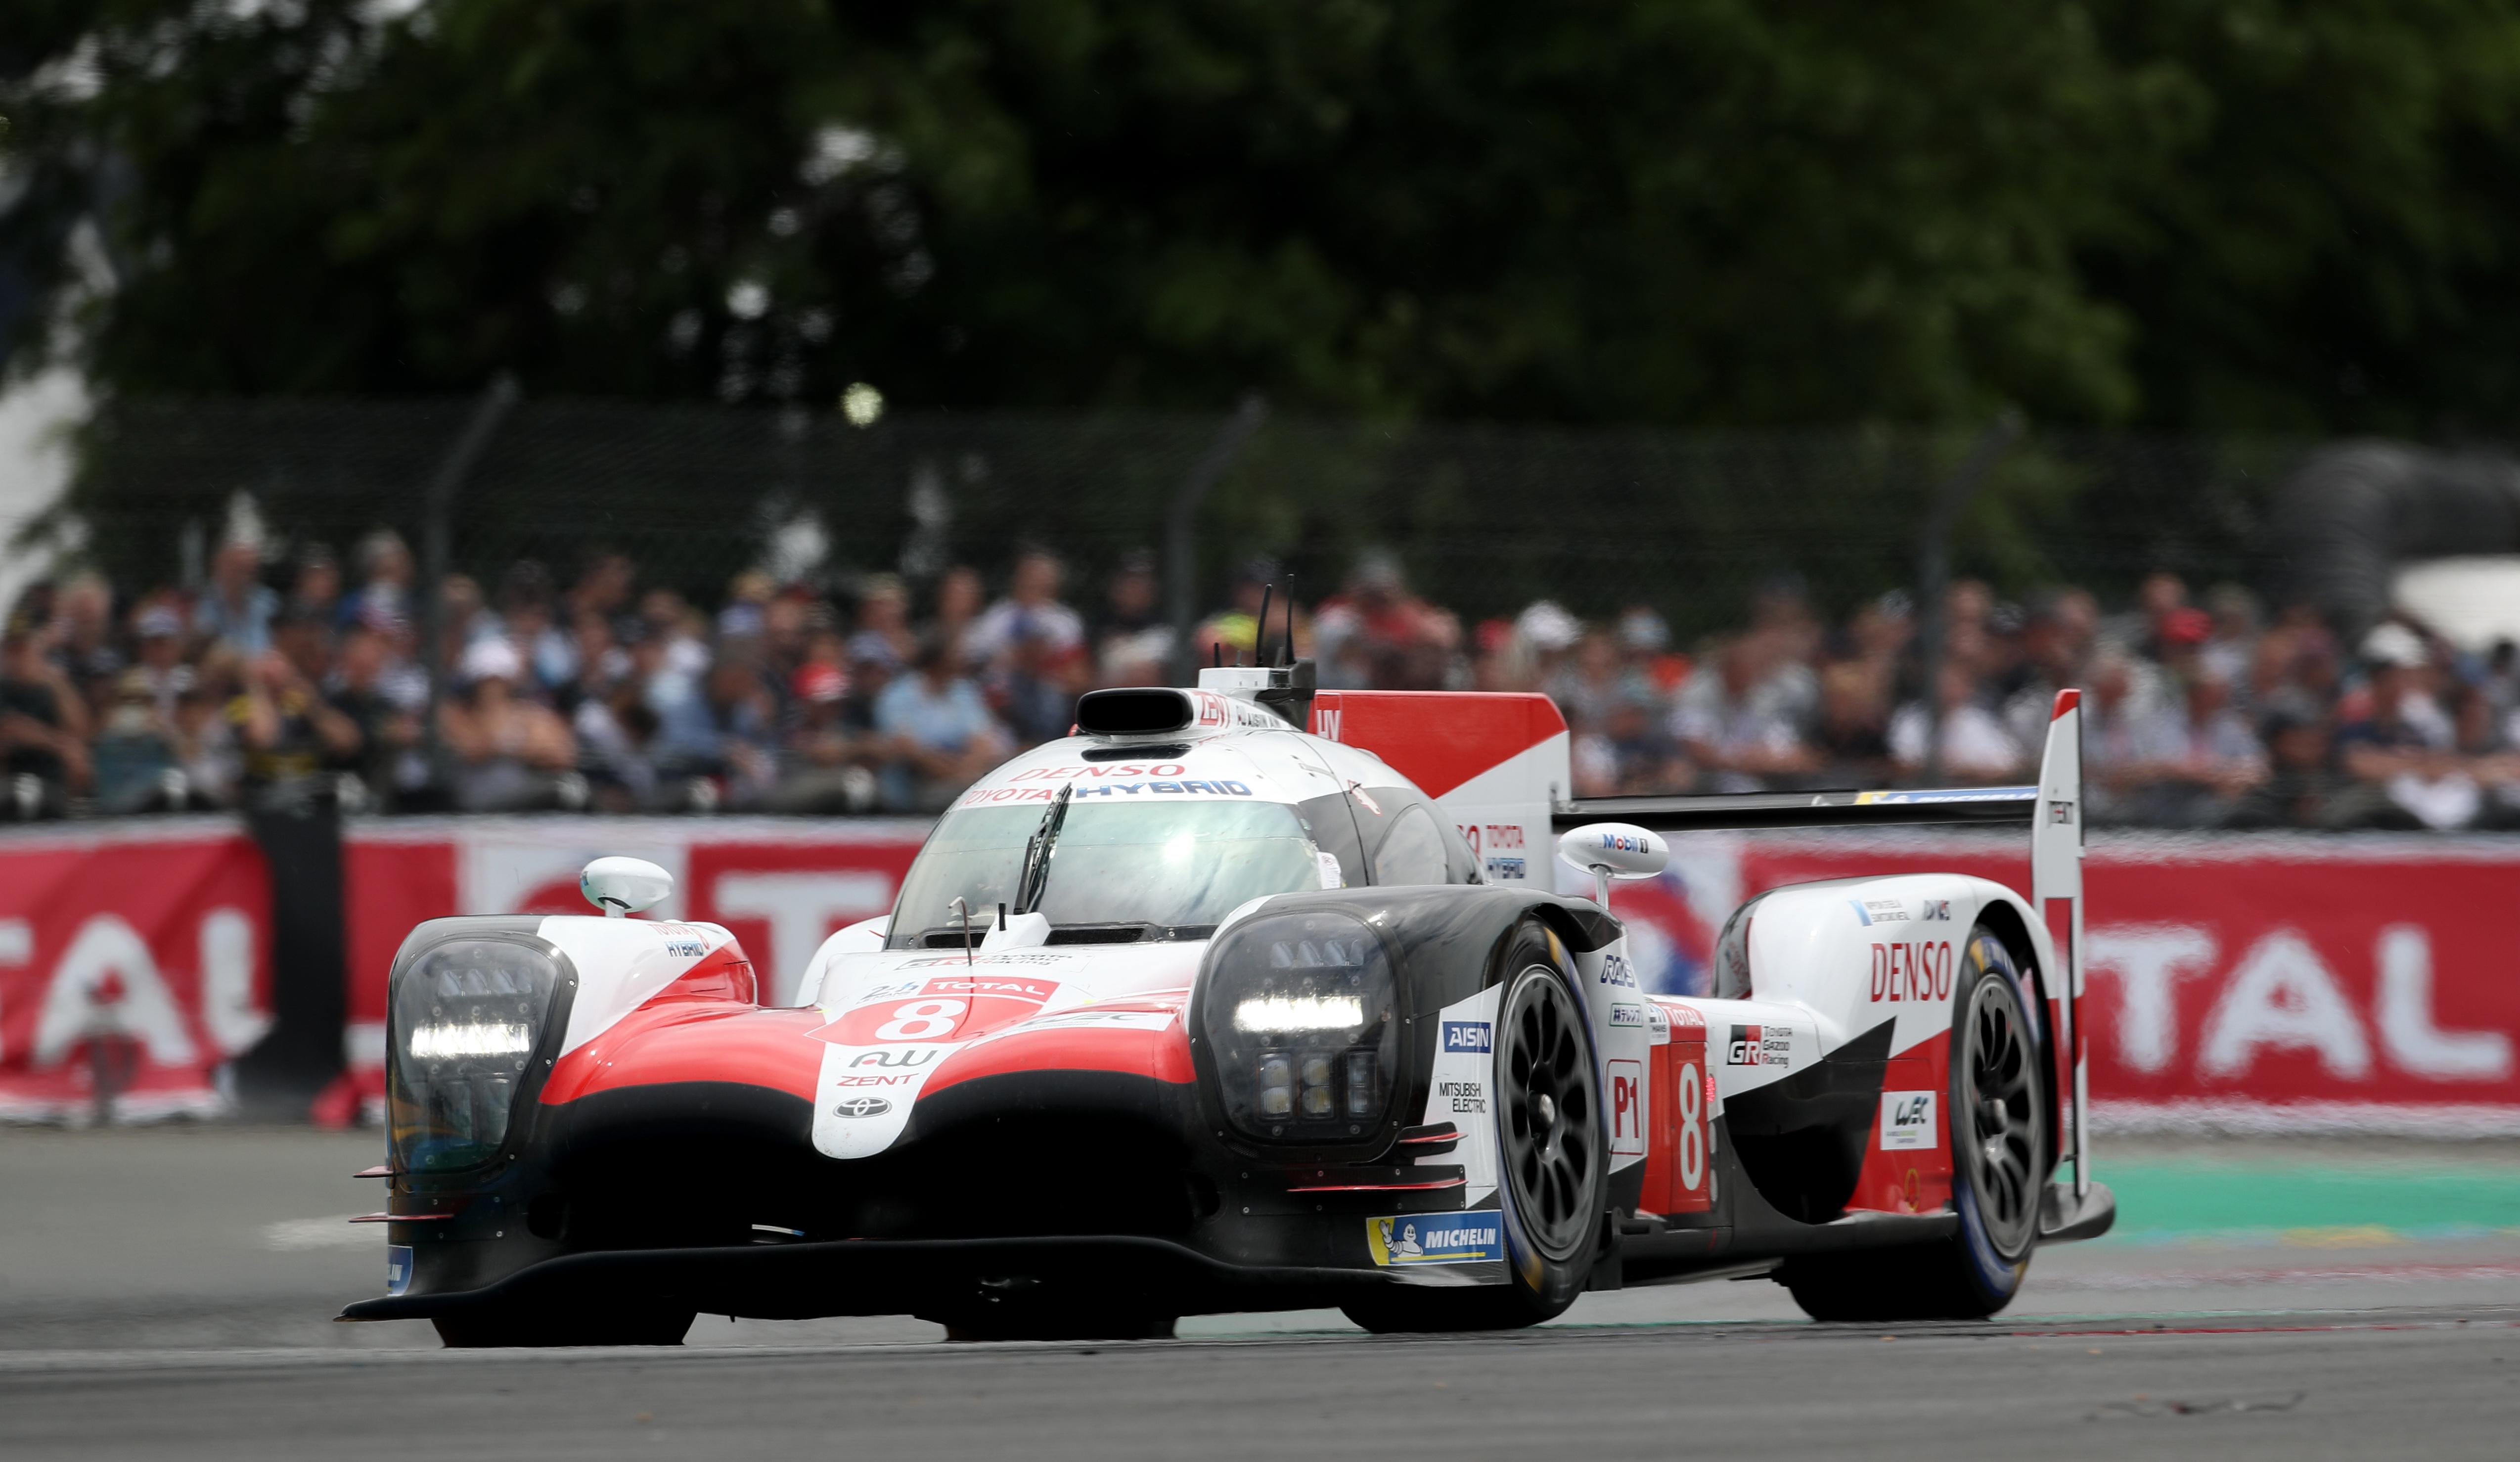 The 24-hour race at Le Mans has its 2018 winner